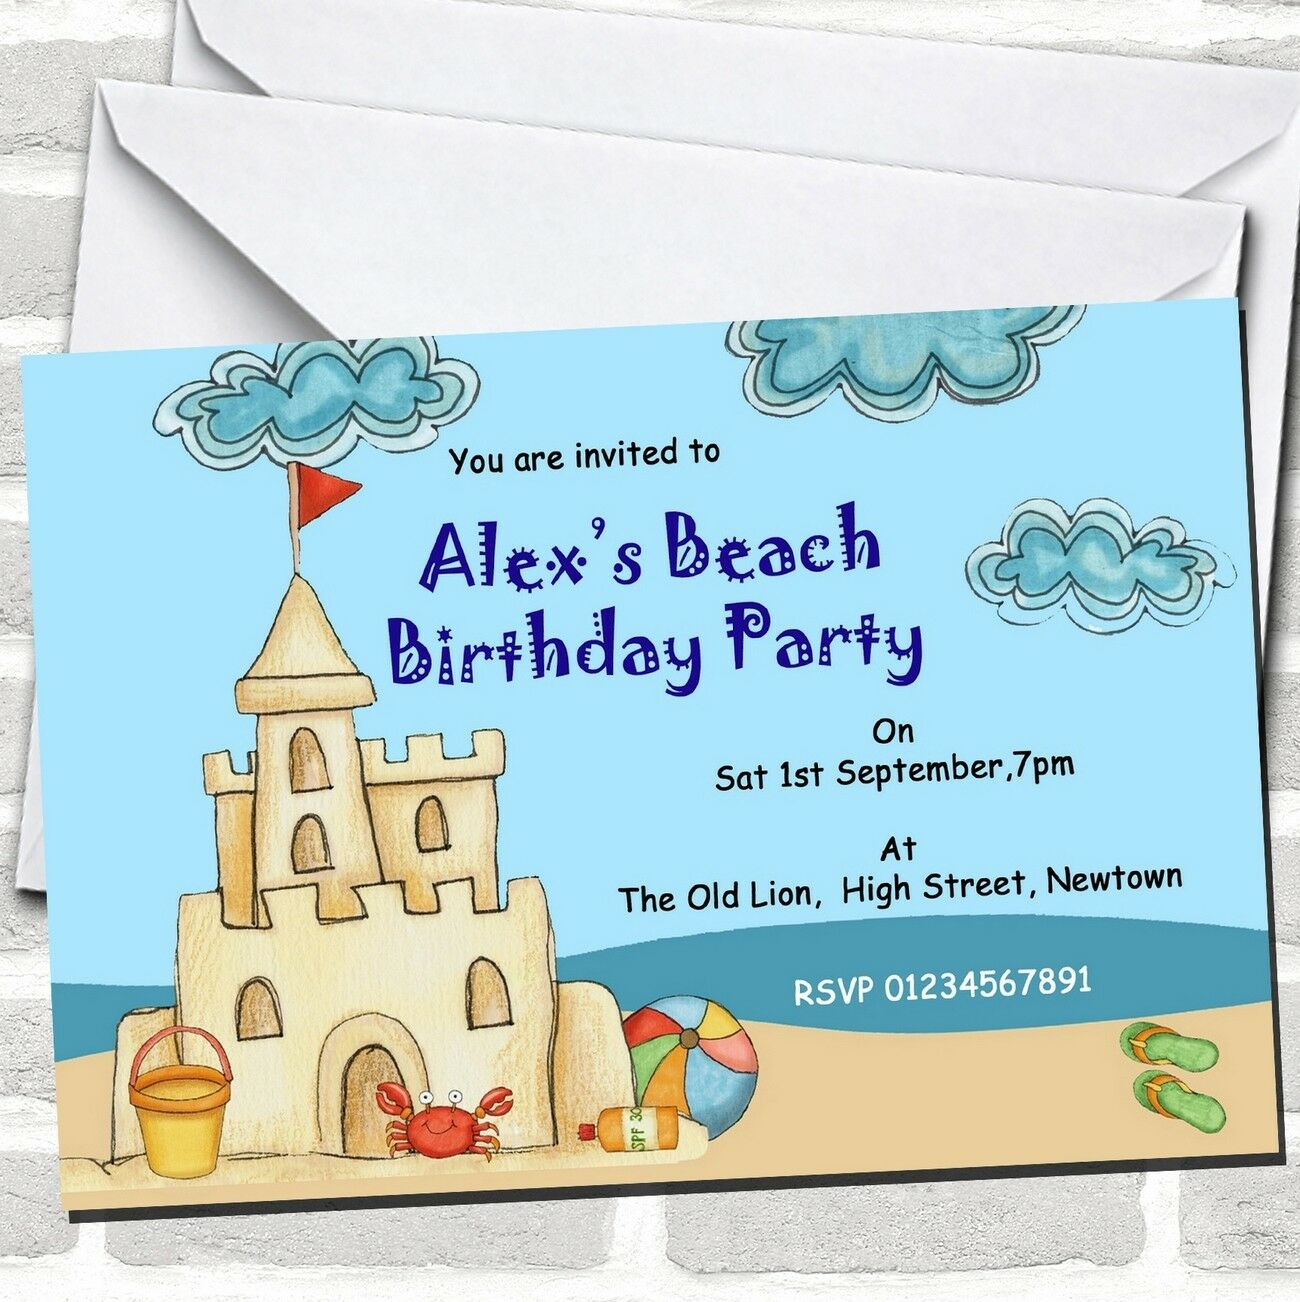 Beach Pool Sandcastle Theme Birthday Party Invitations Bad9c1